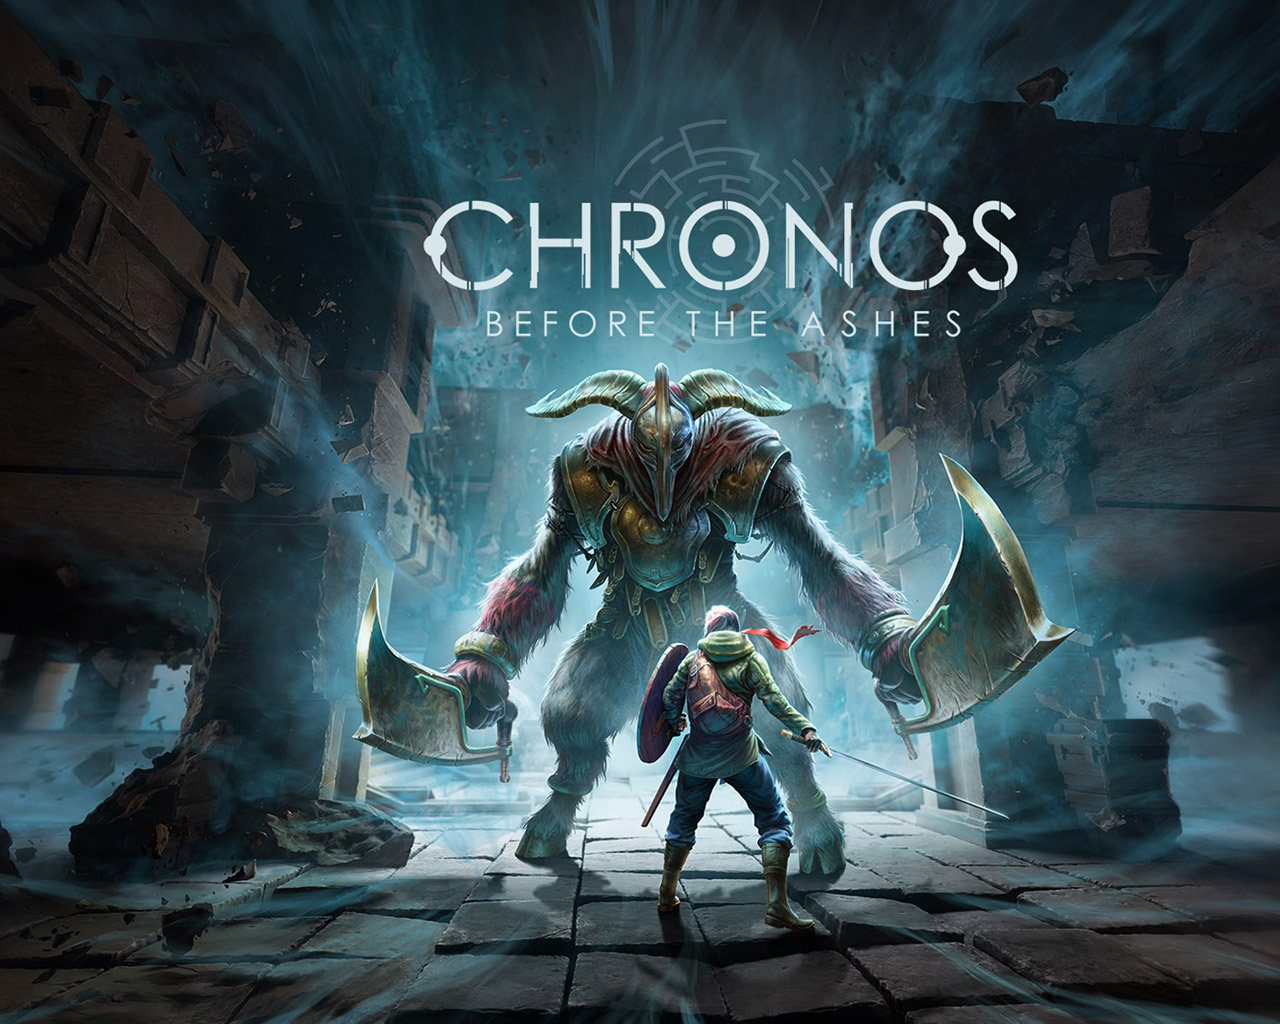 Free Chronos: Before the Ashes Wallpaper in 1280x1024